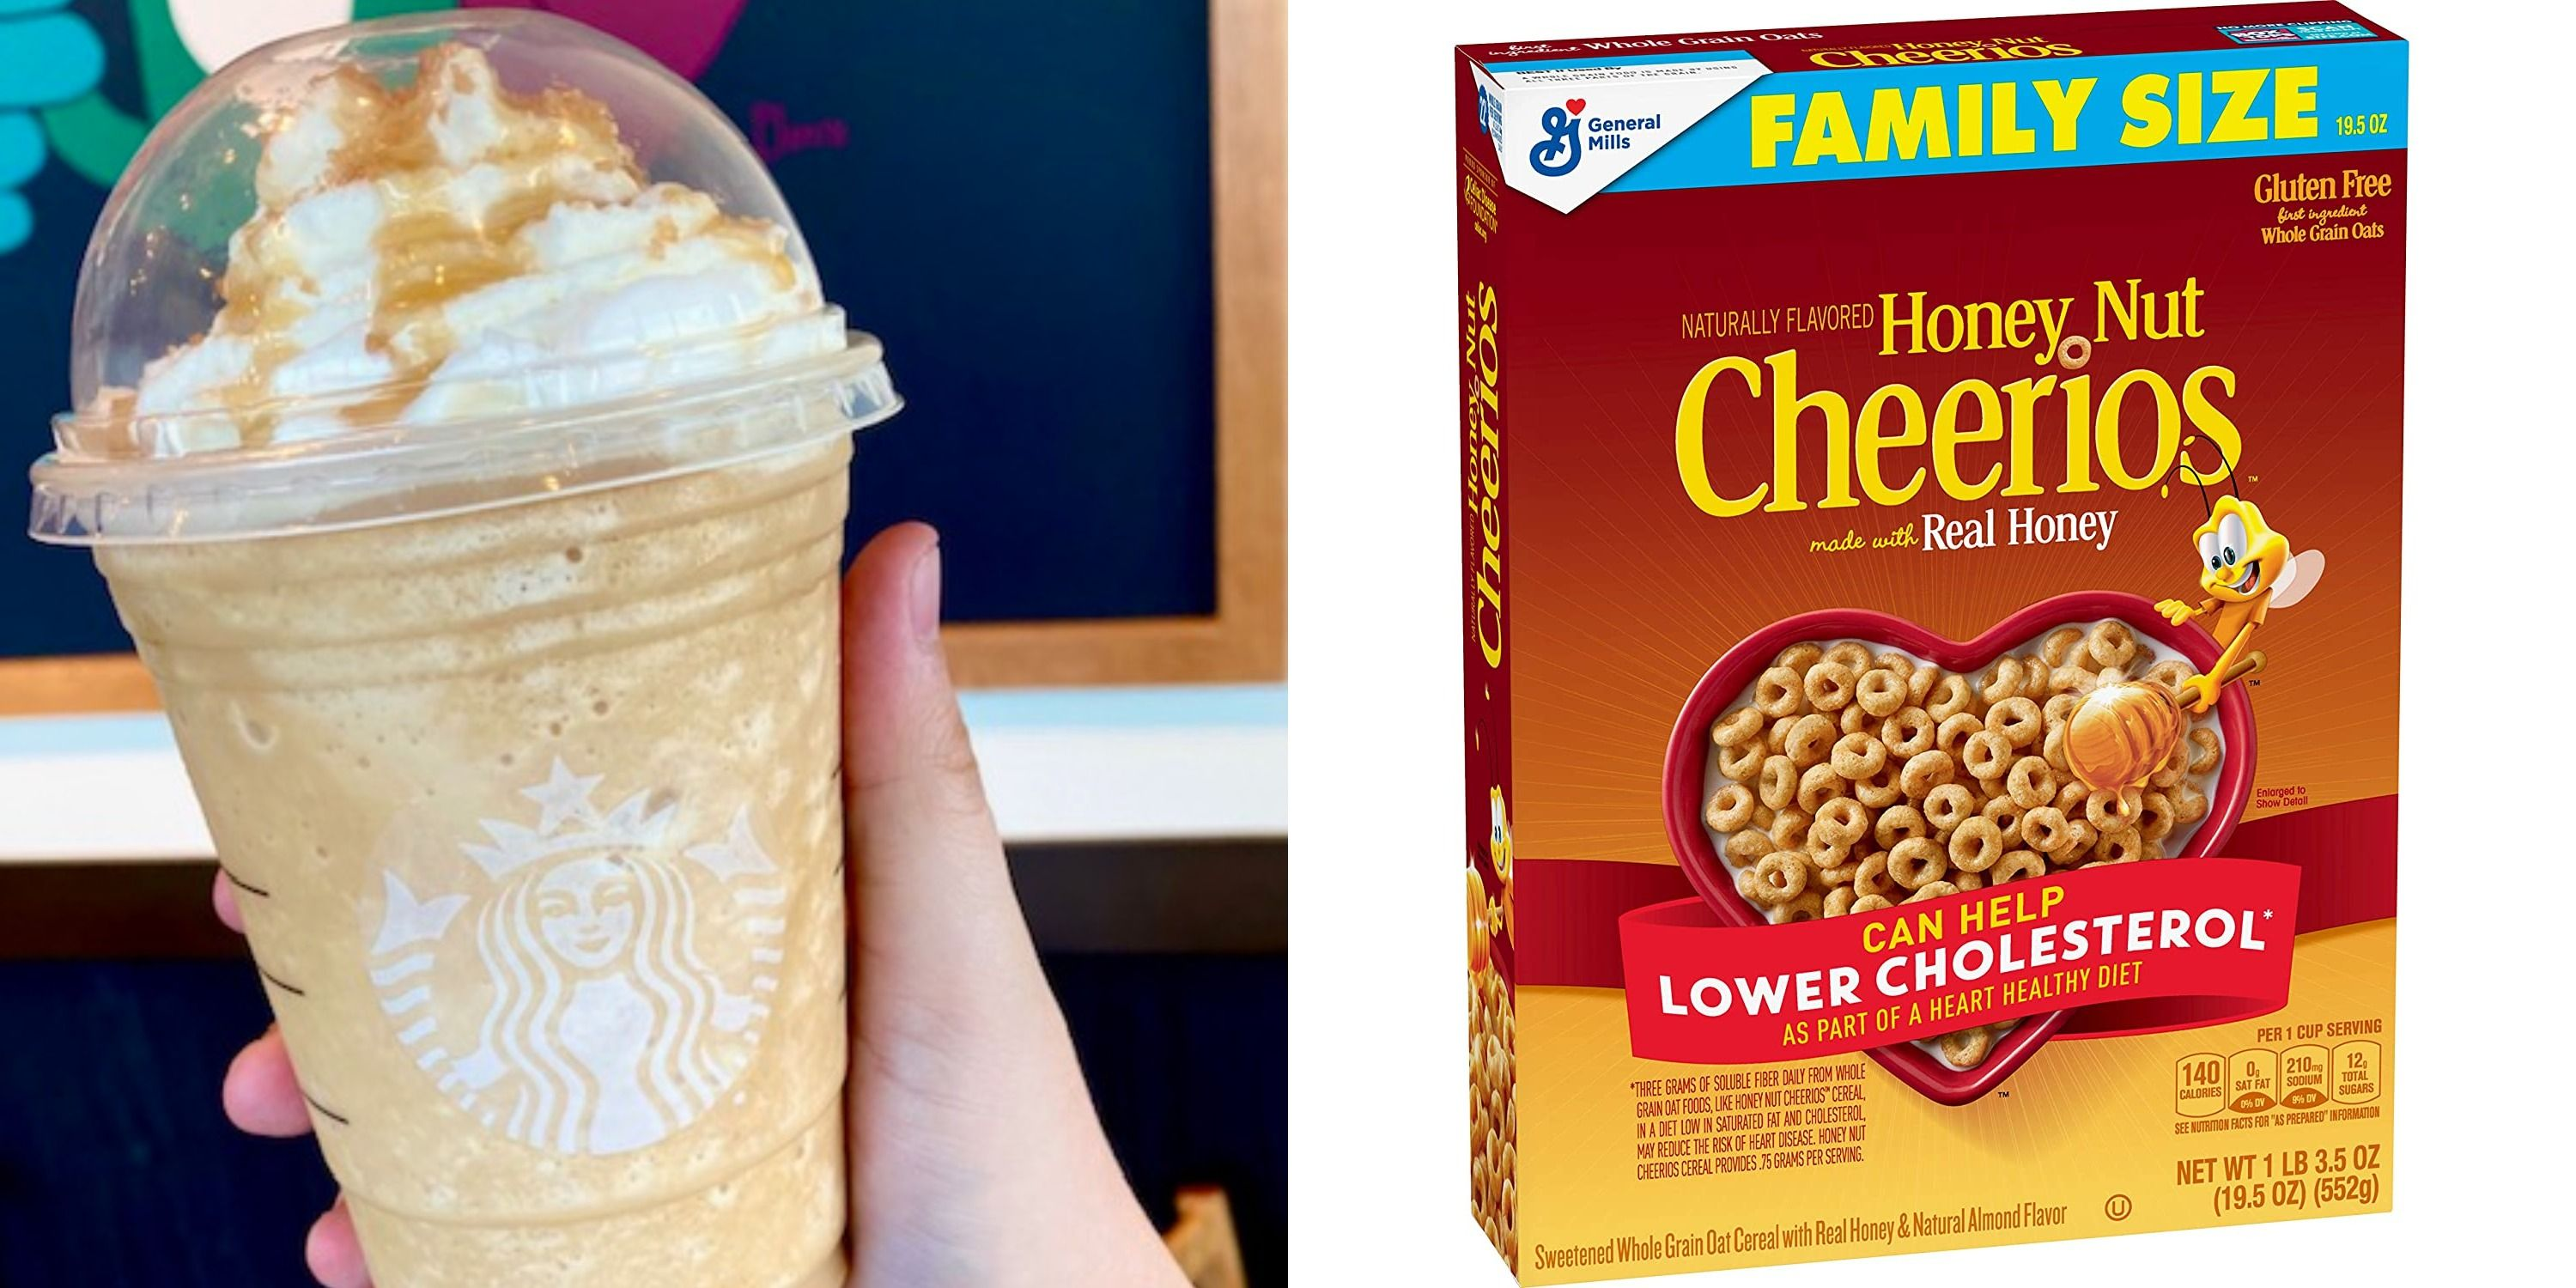 How To Order A Starbucks Honey Nut Cheerios Frappuccino